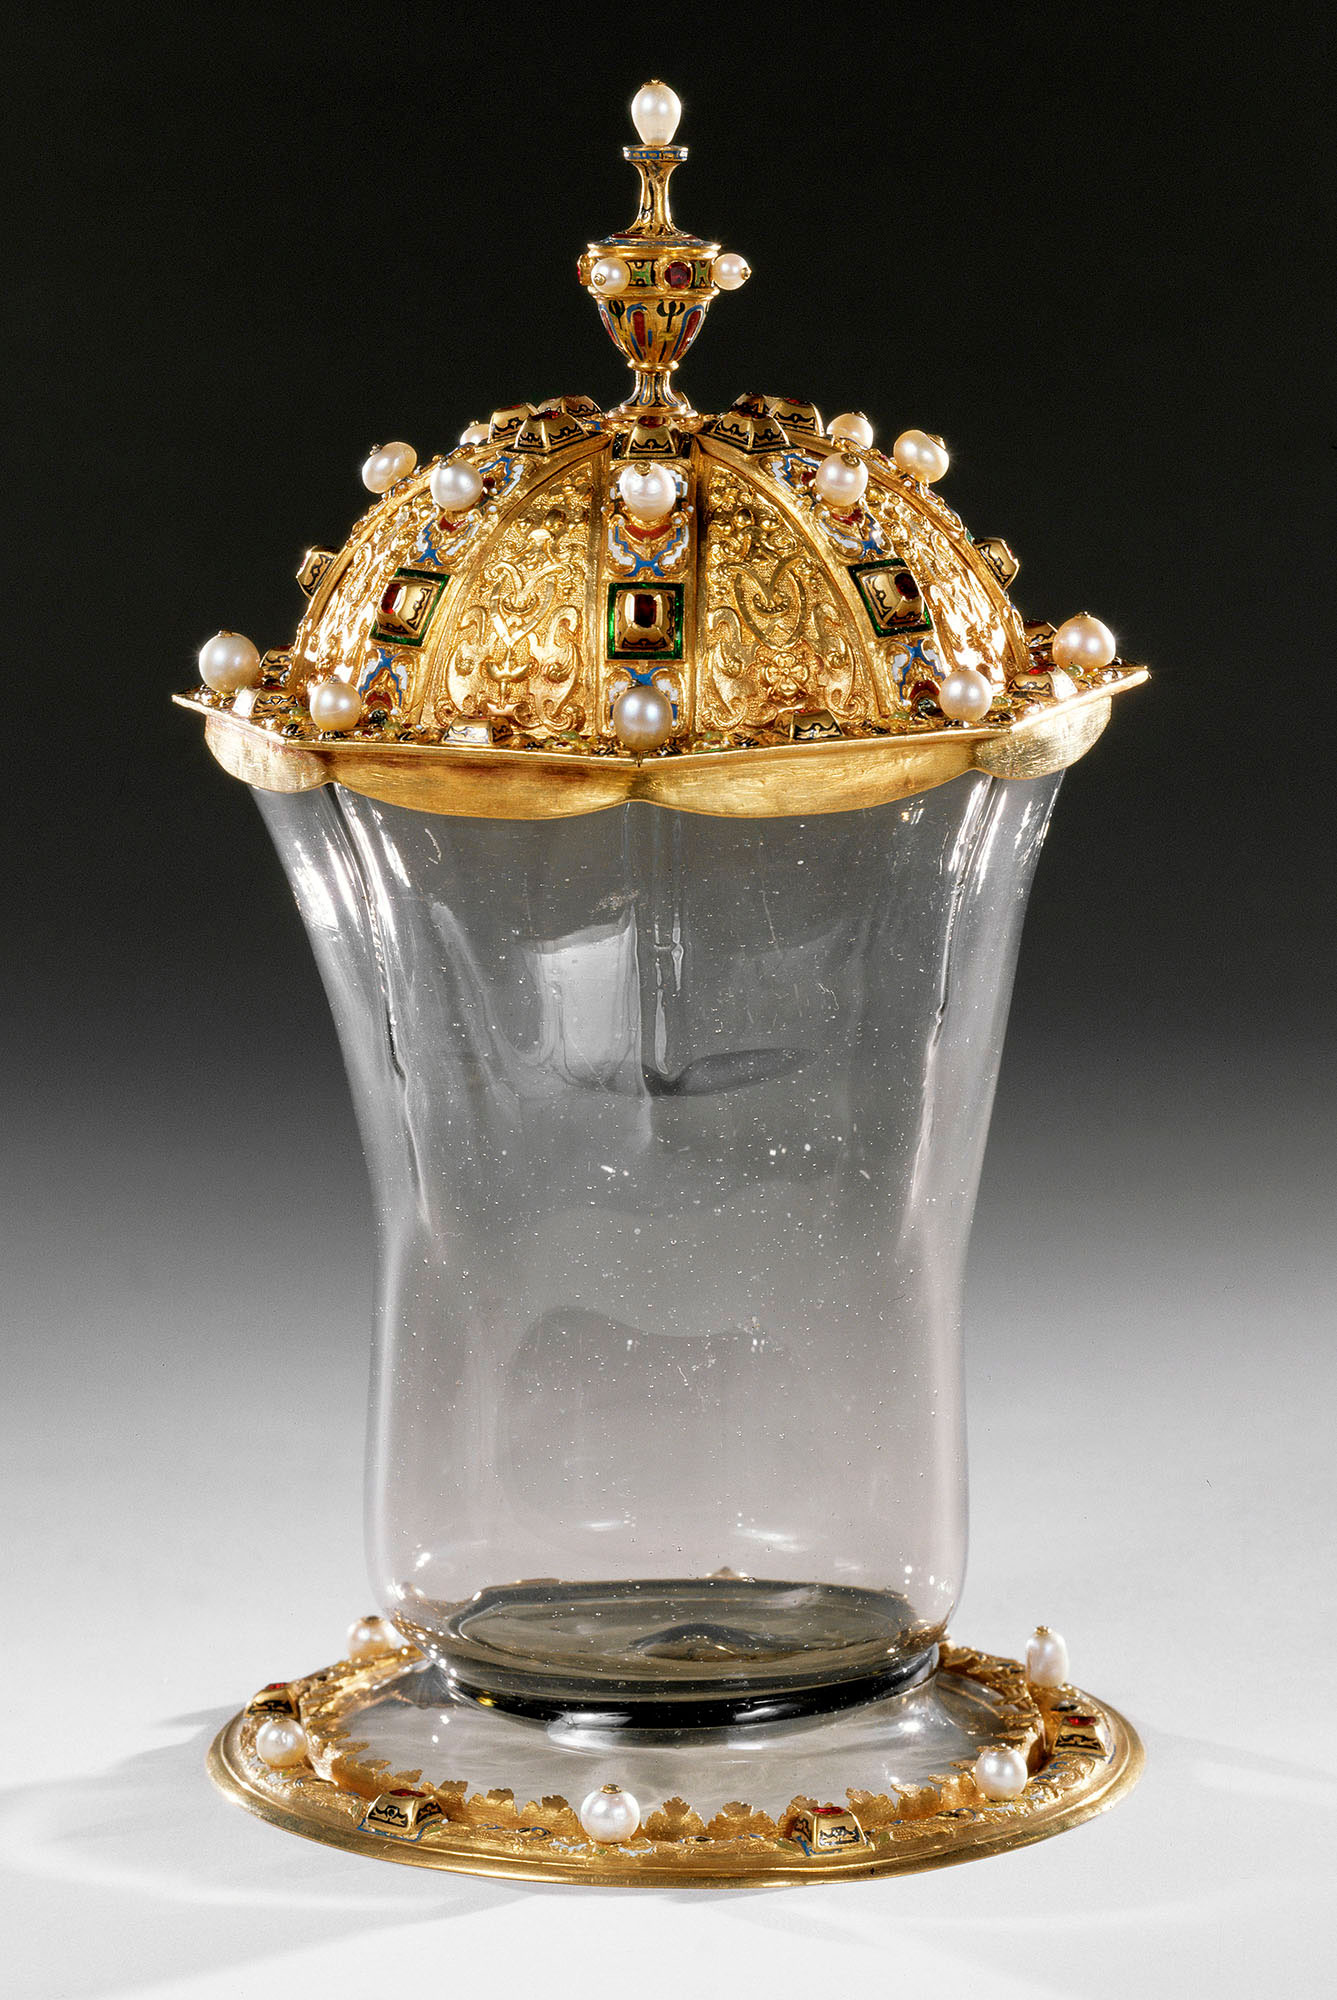 Clear glass vessel with gold trim at base and gold, jewelled lid.